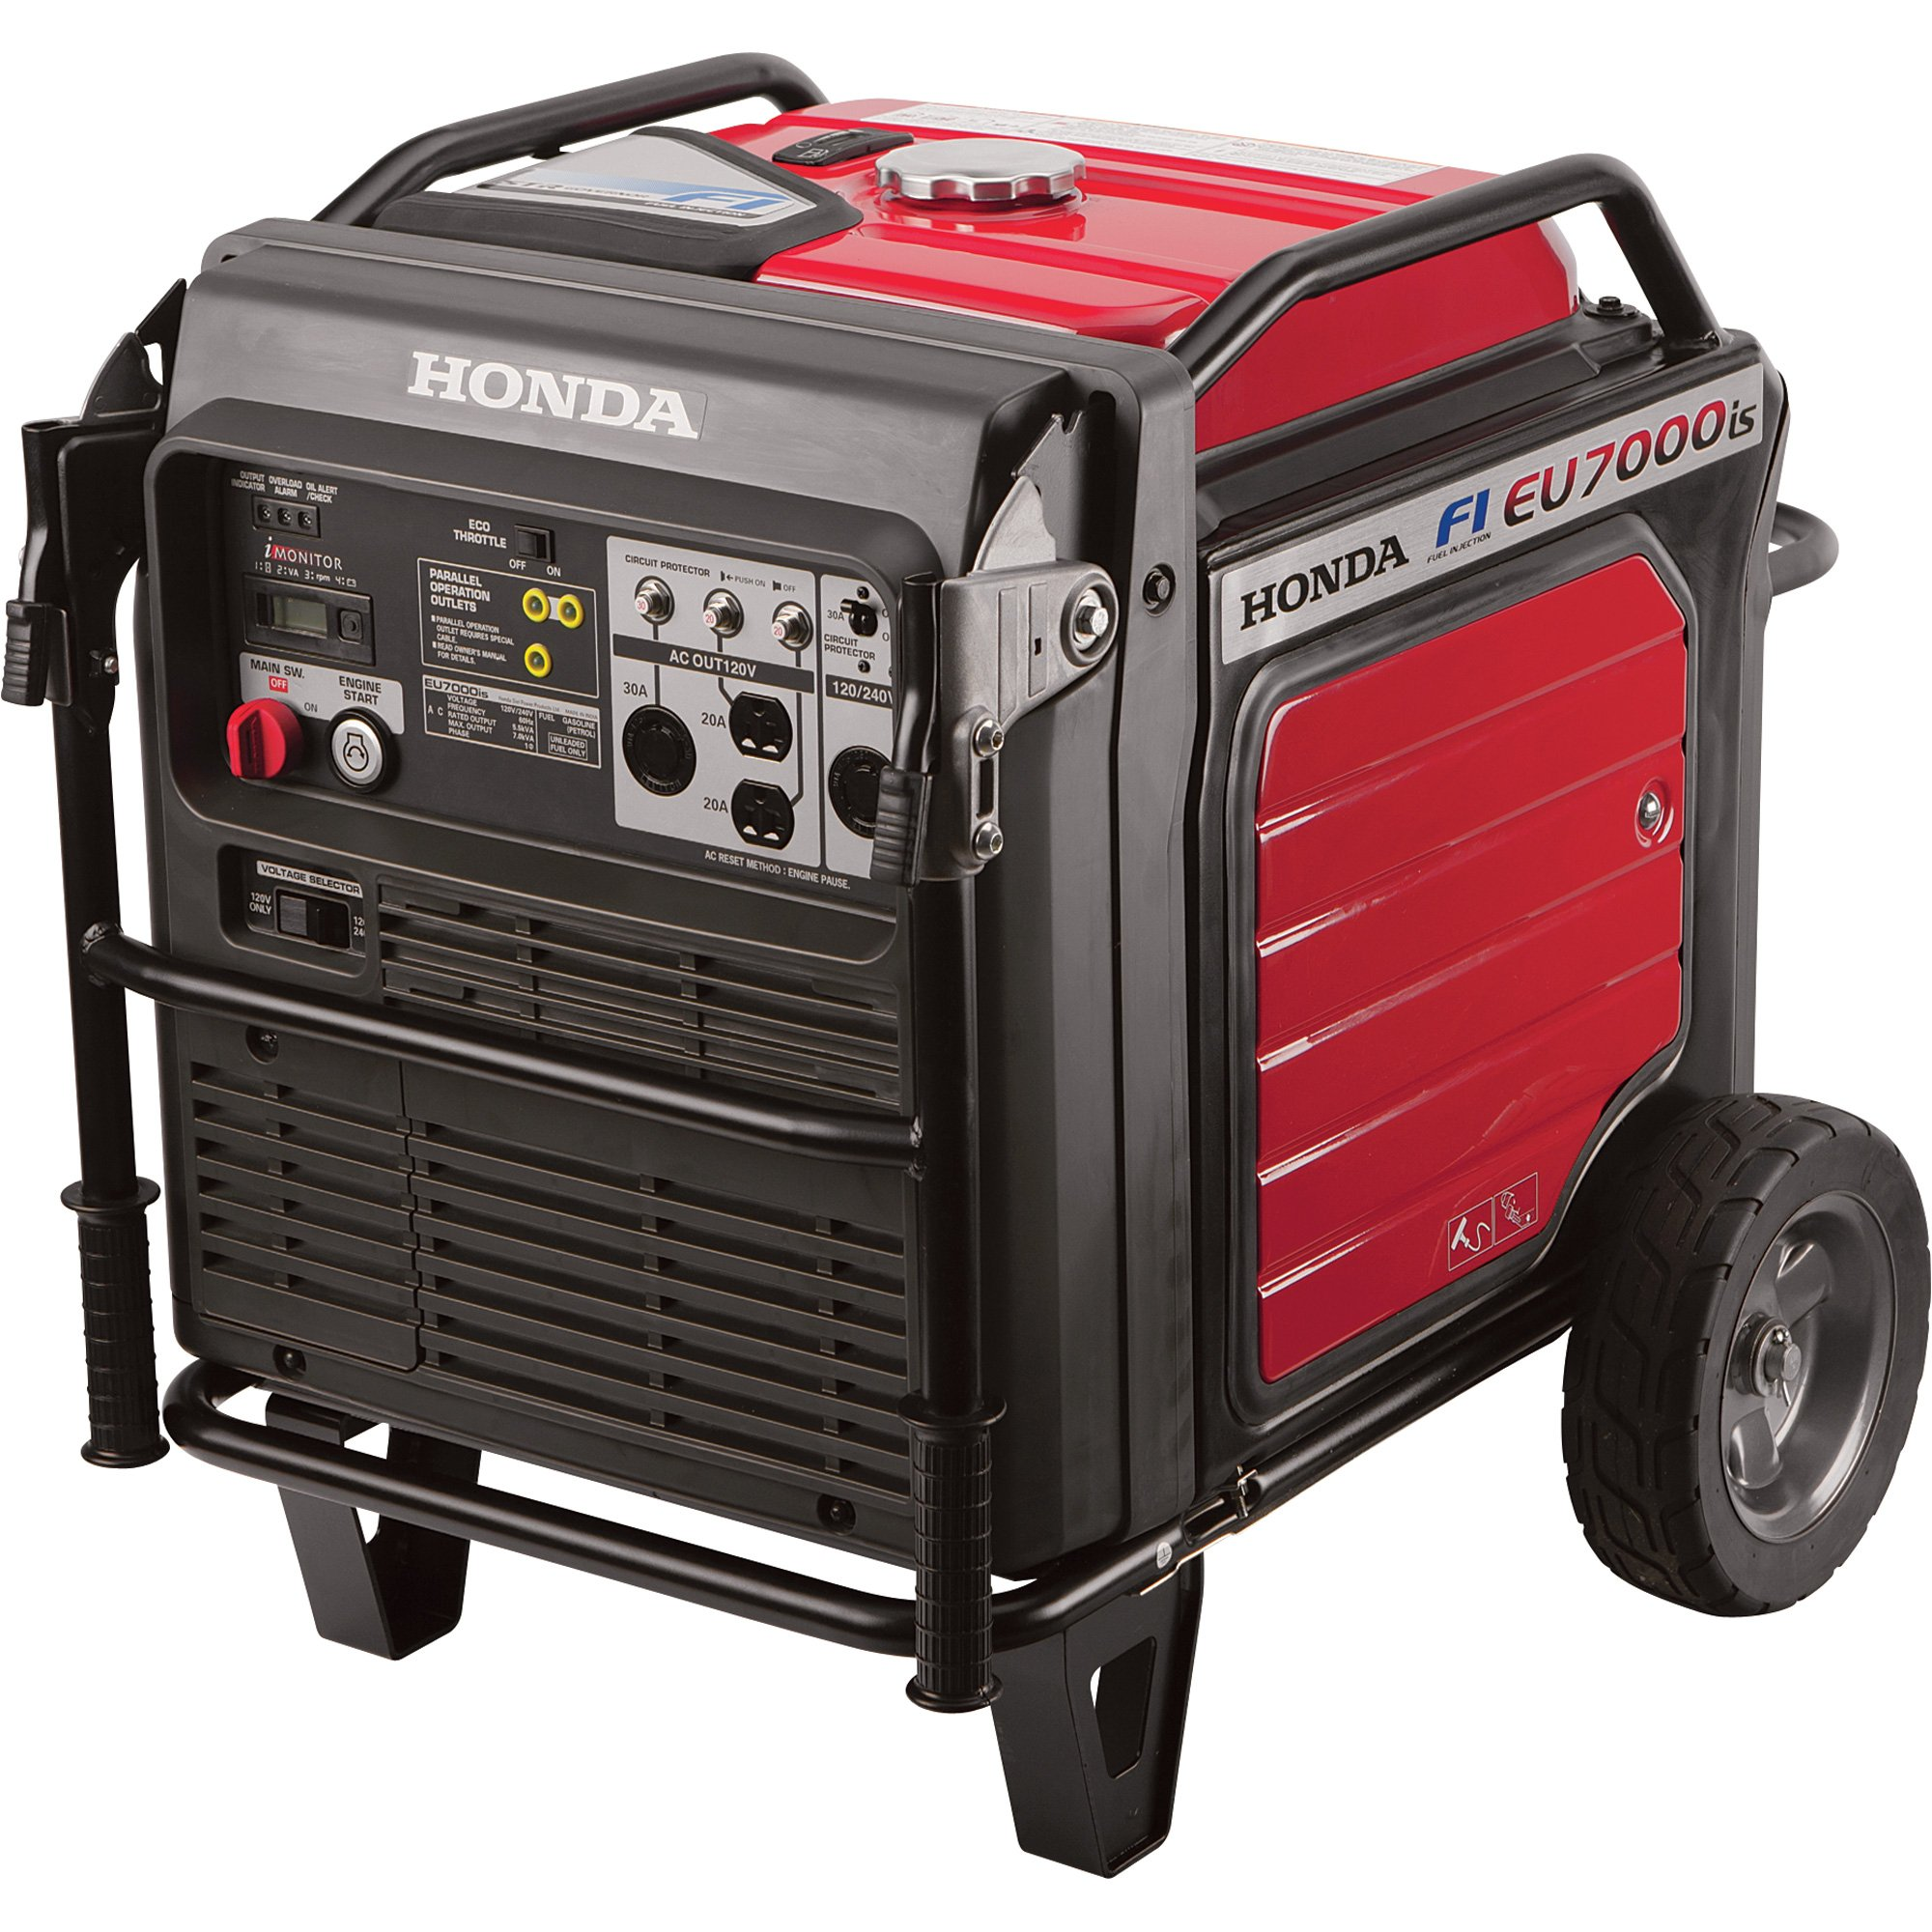 Honda Eu7000is Inverter Generator With Electronic Fuel